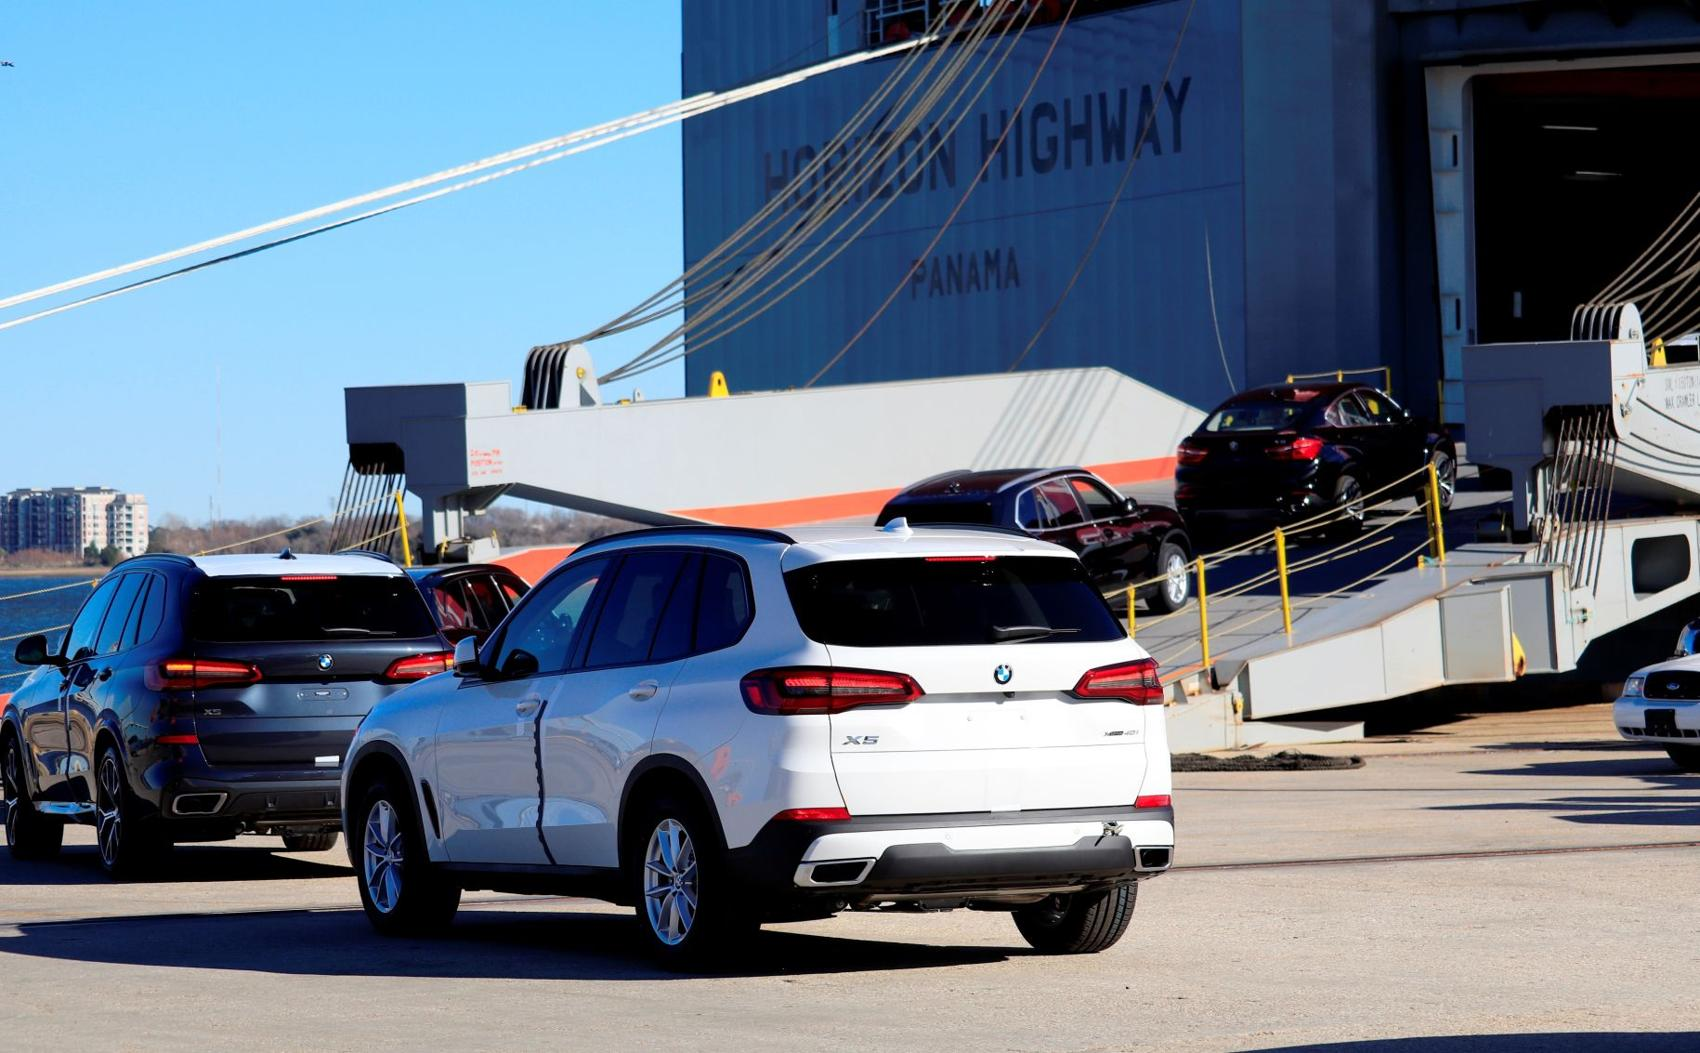 POST AND COURIER – More tariff trouble could be on the way for SC automakers